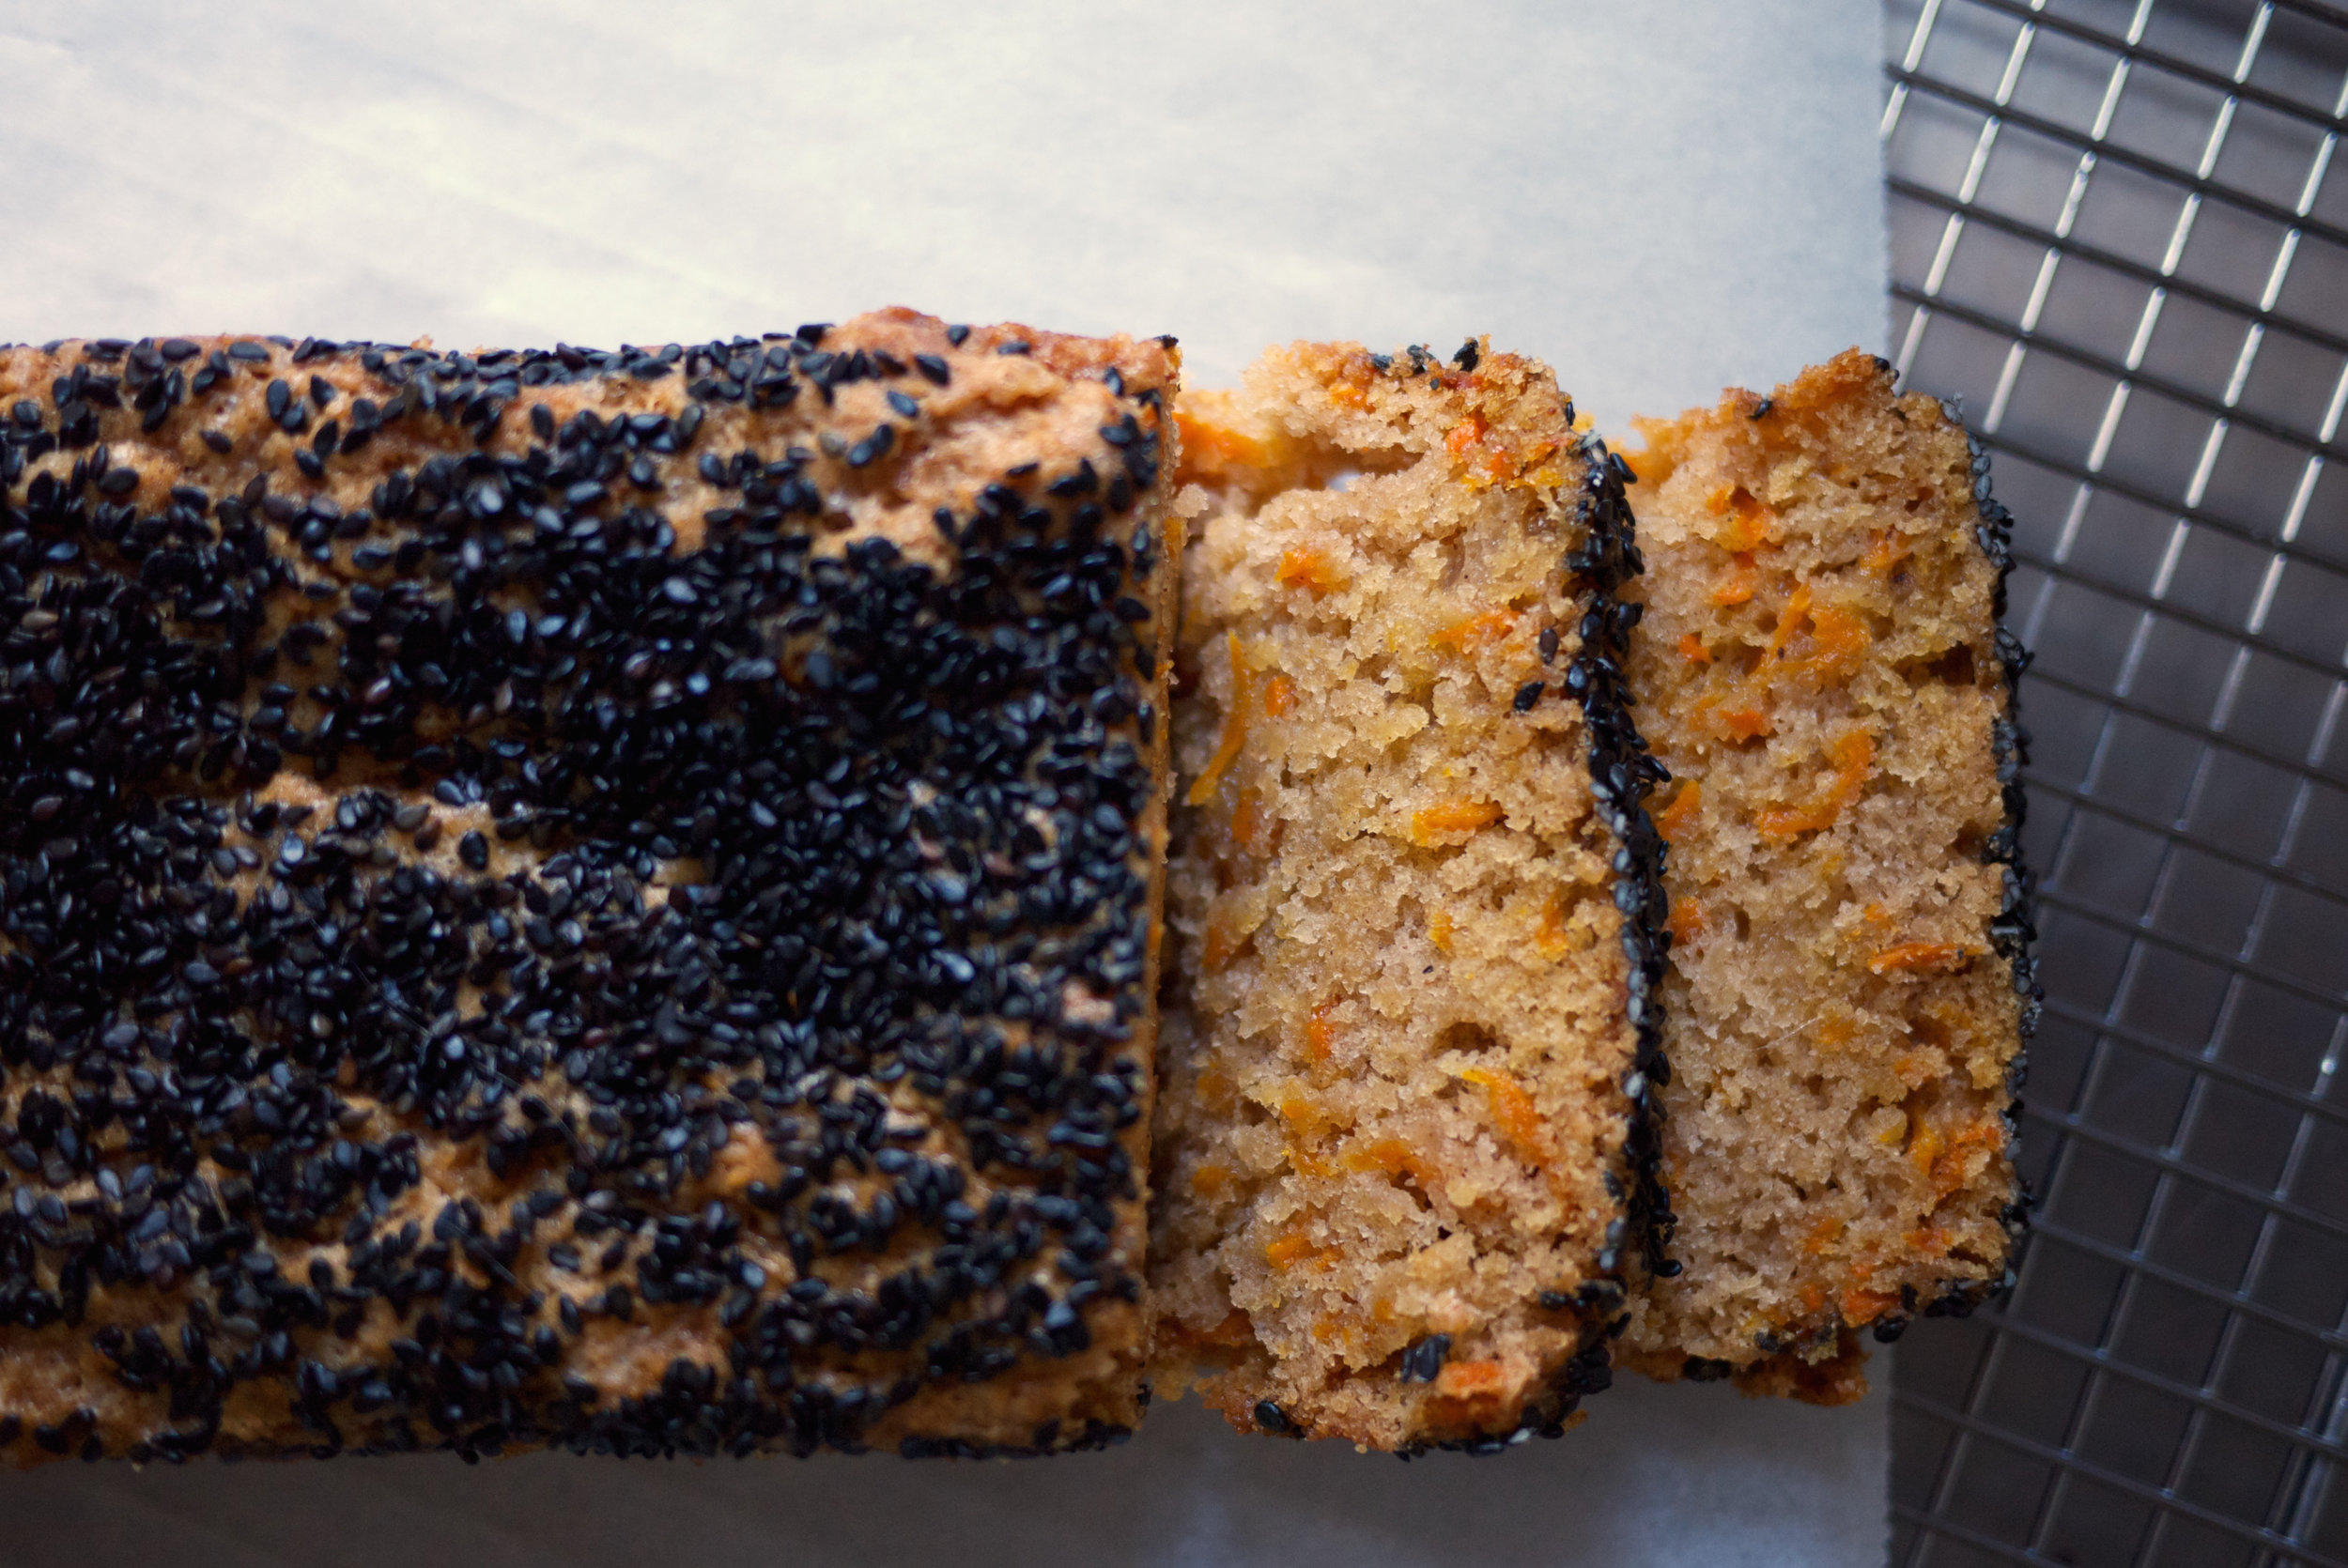 Vegan Black Sesame Carrot Cake